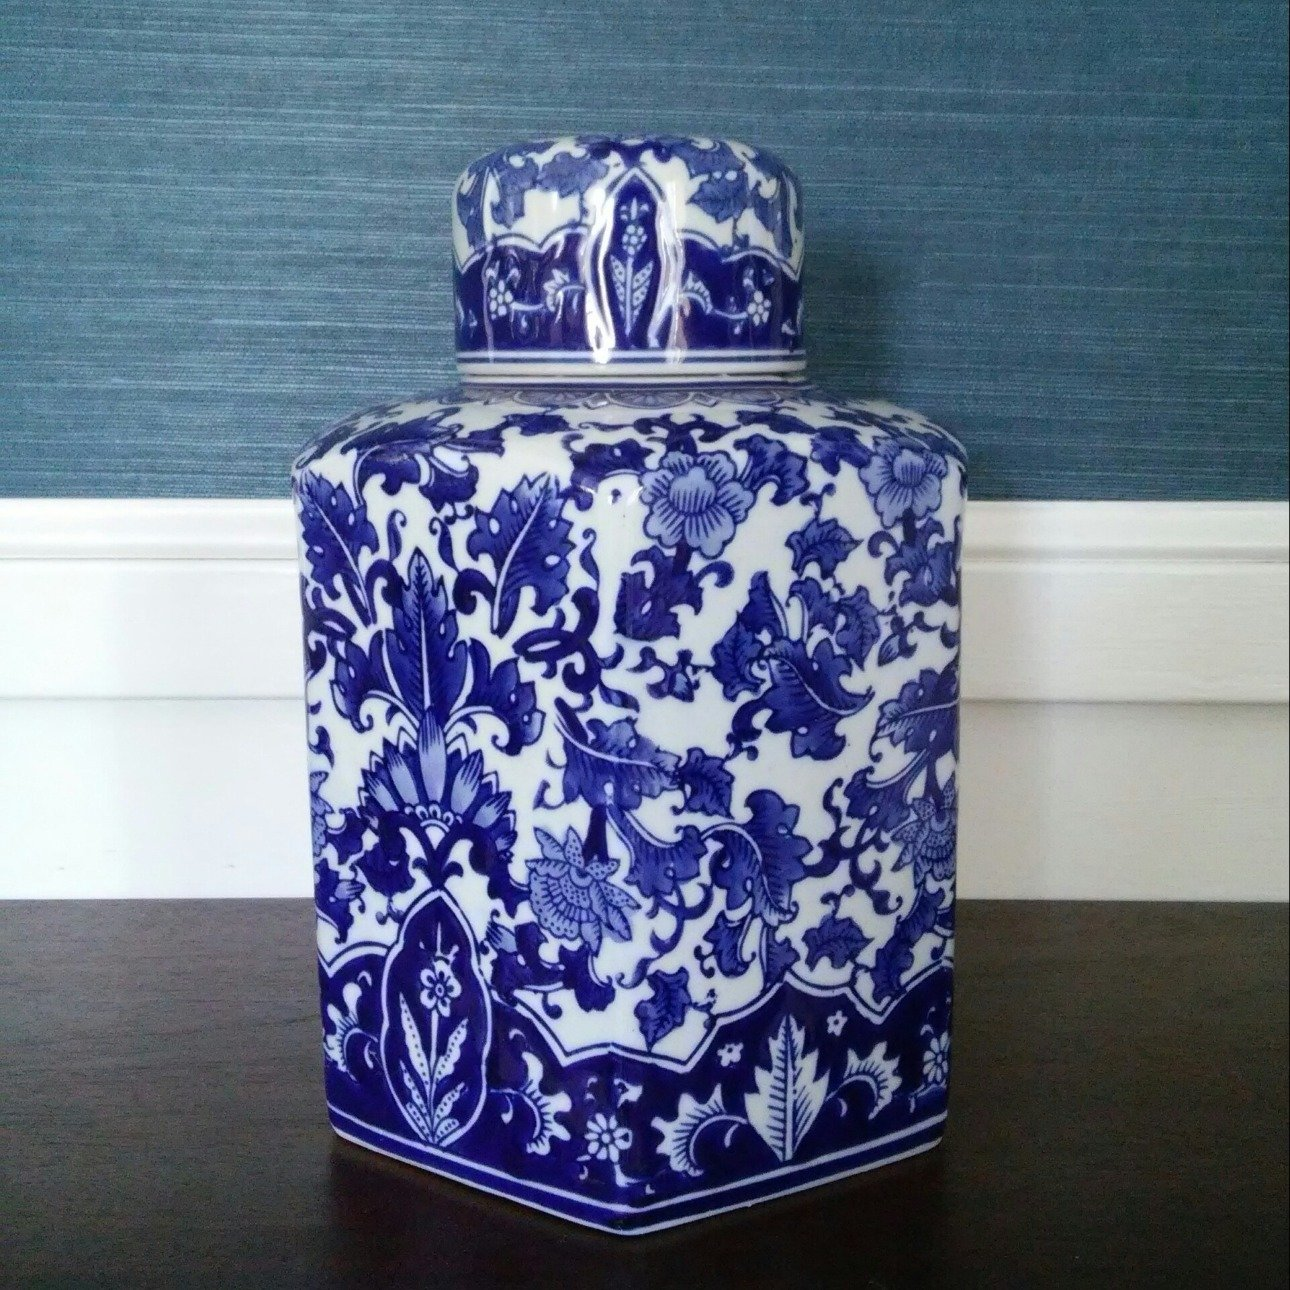 Large Blue and White Chinese Porcelain Ginger Jar with Lid